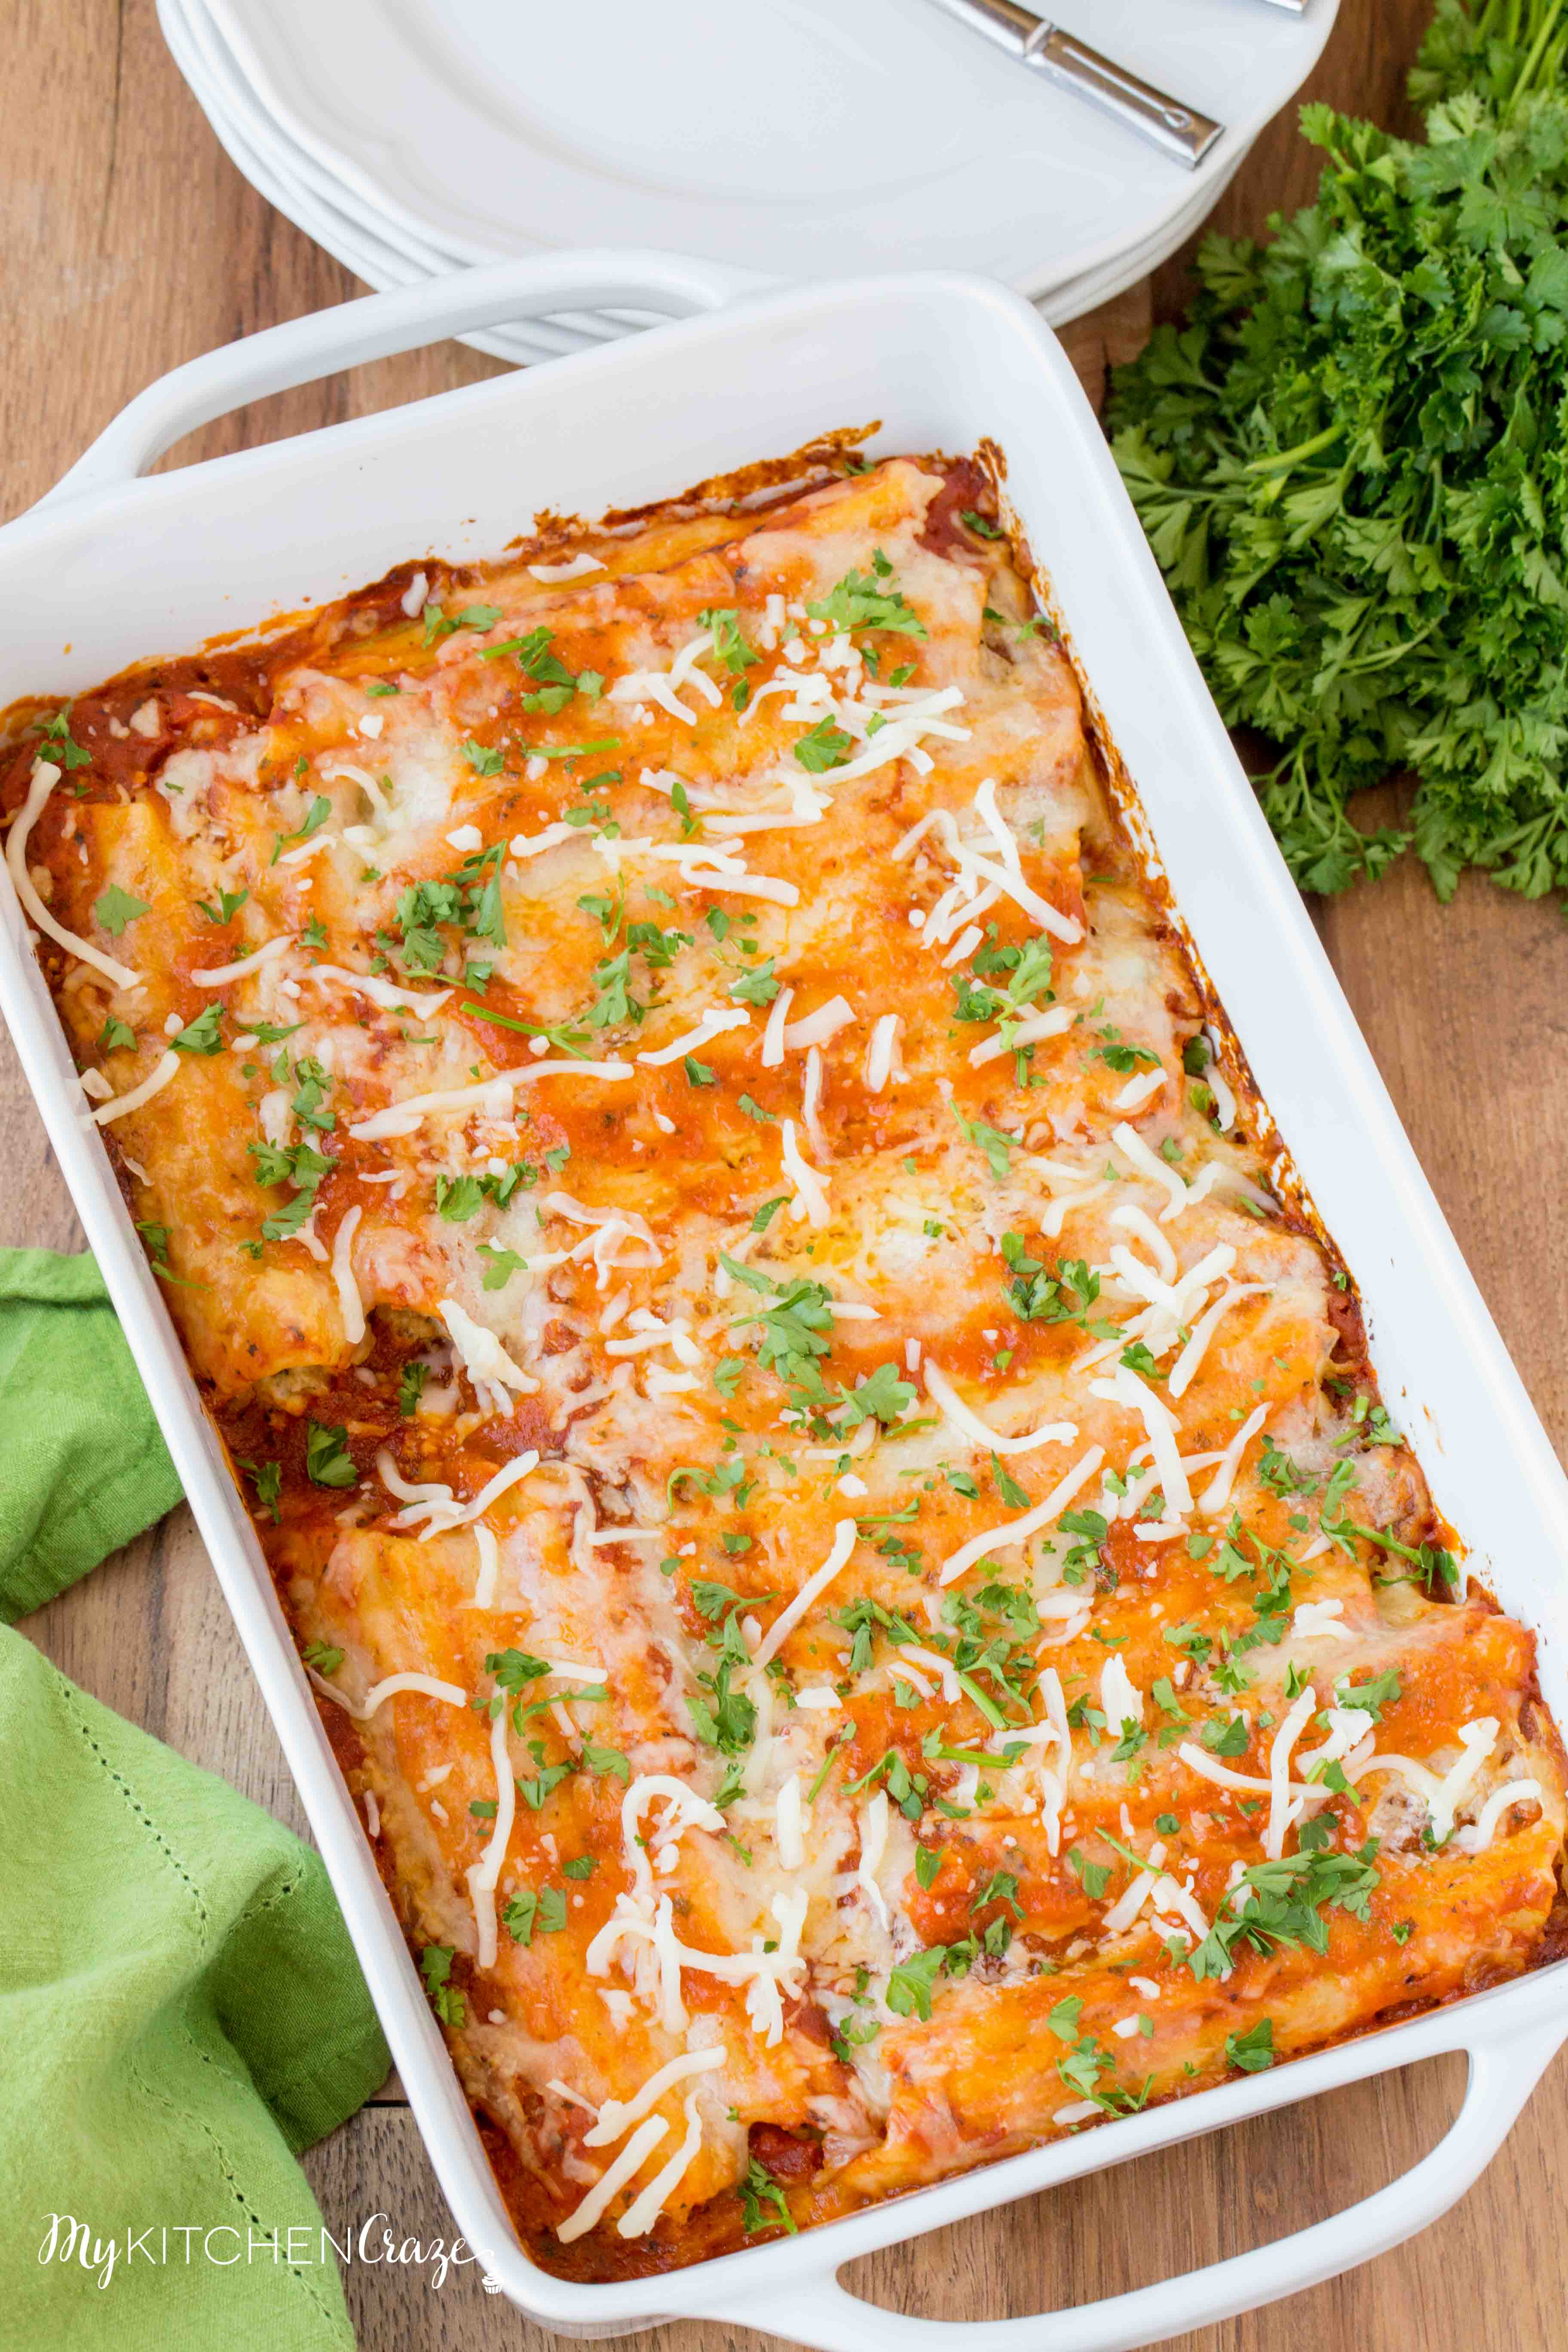 Homemade Manicotti ~ mykitchencraze.com ~ Enjoy this delicious homemade manicotti right at your own dinner table. It's a perfect recipe for a potluck or family gathering.